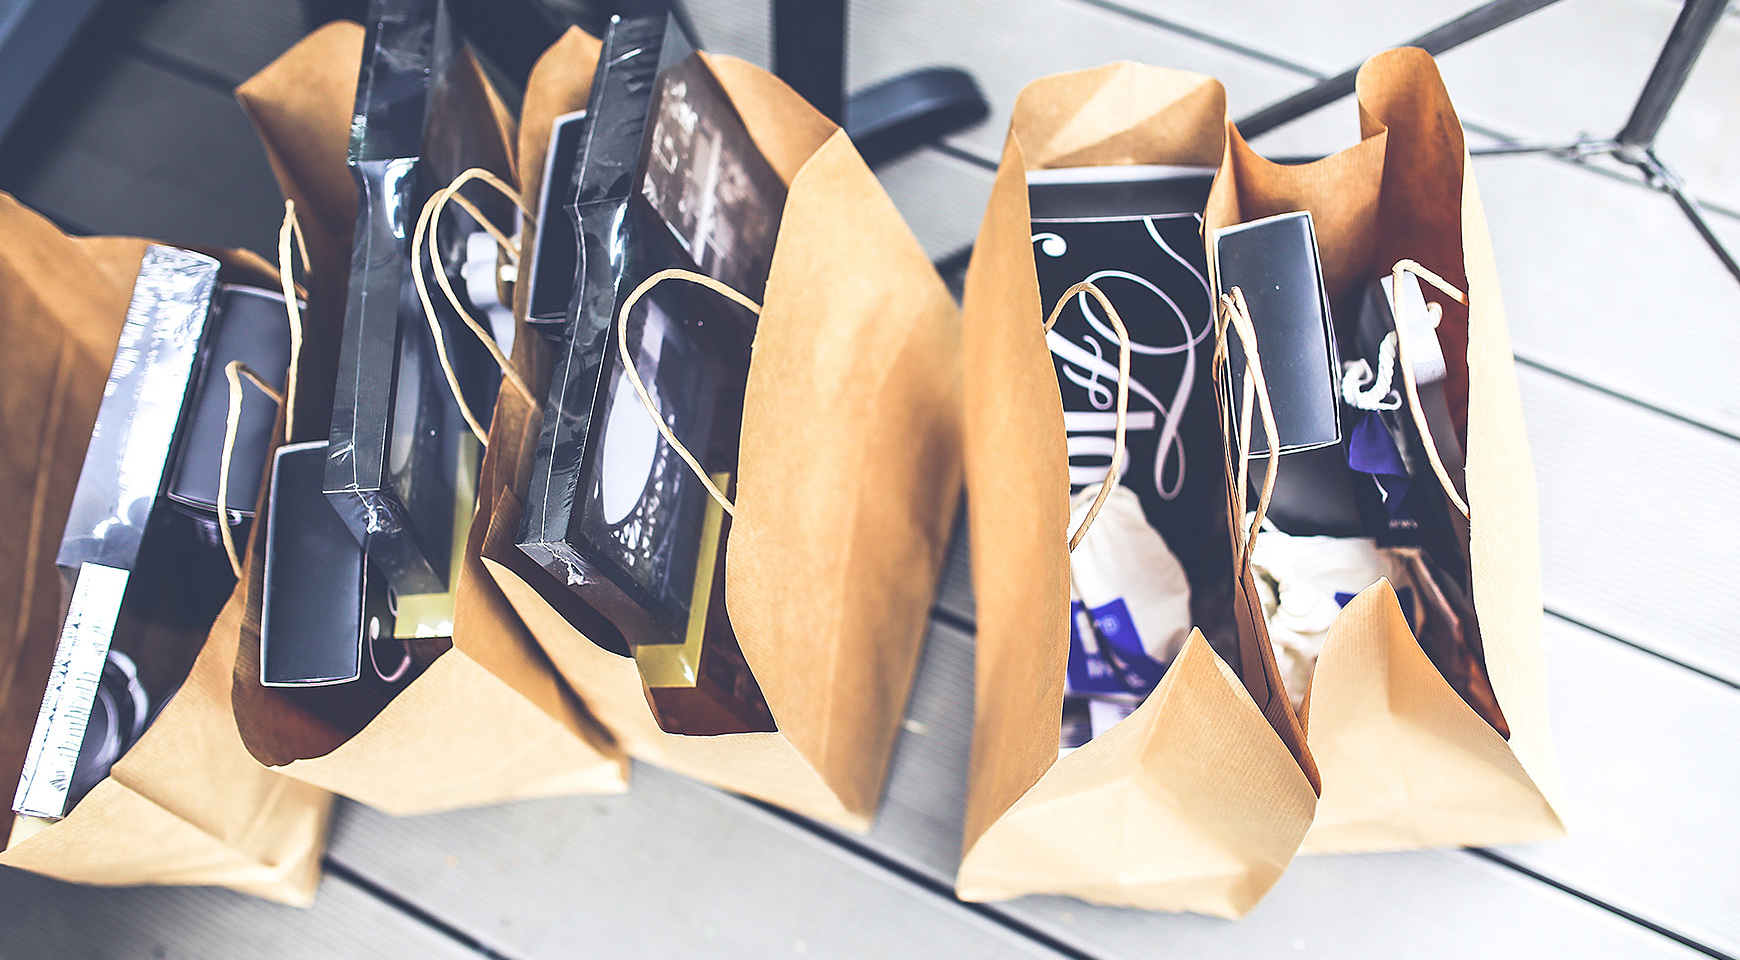 paper bags with purchases